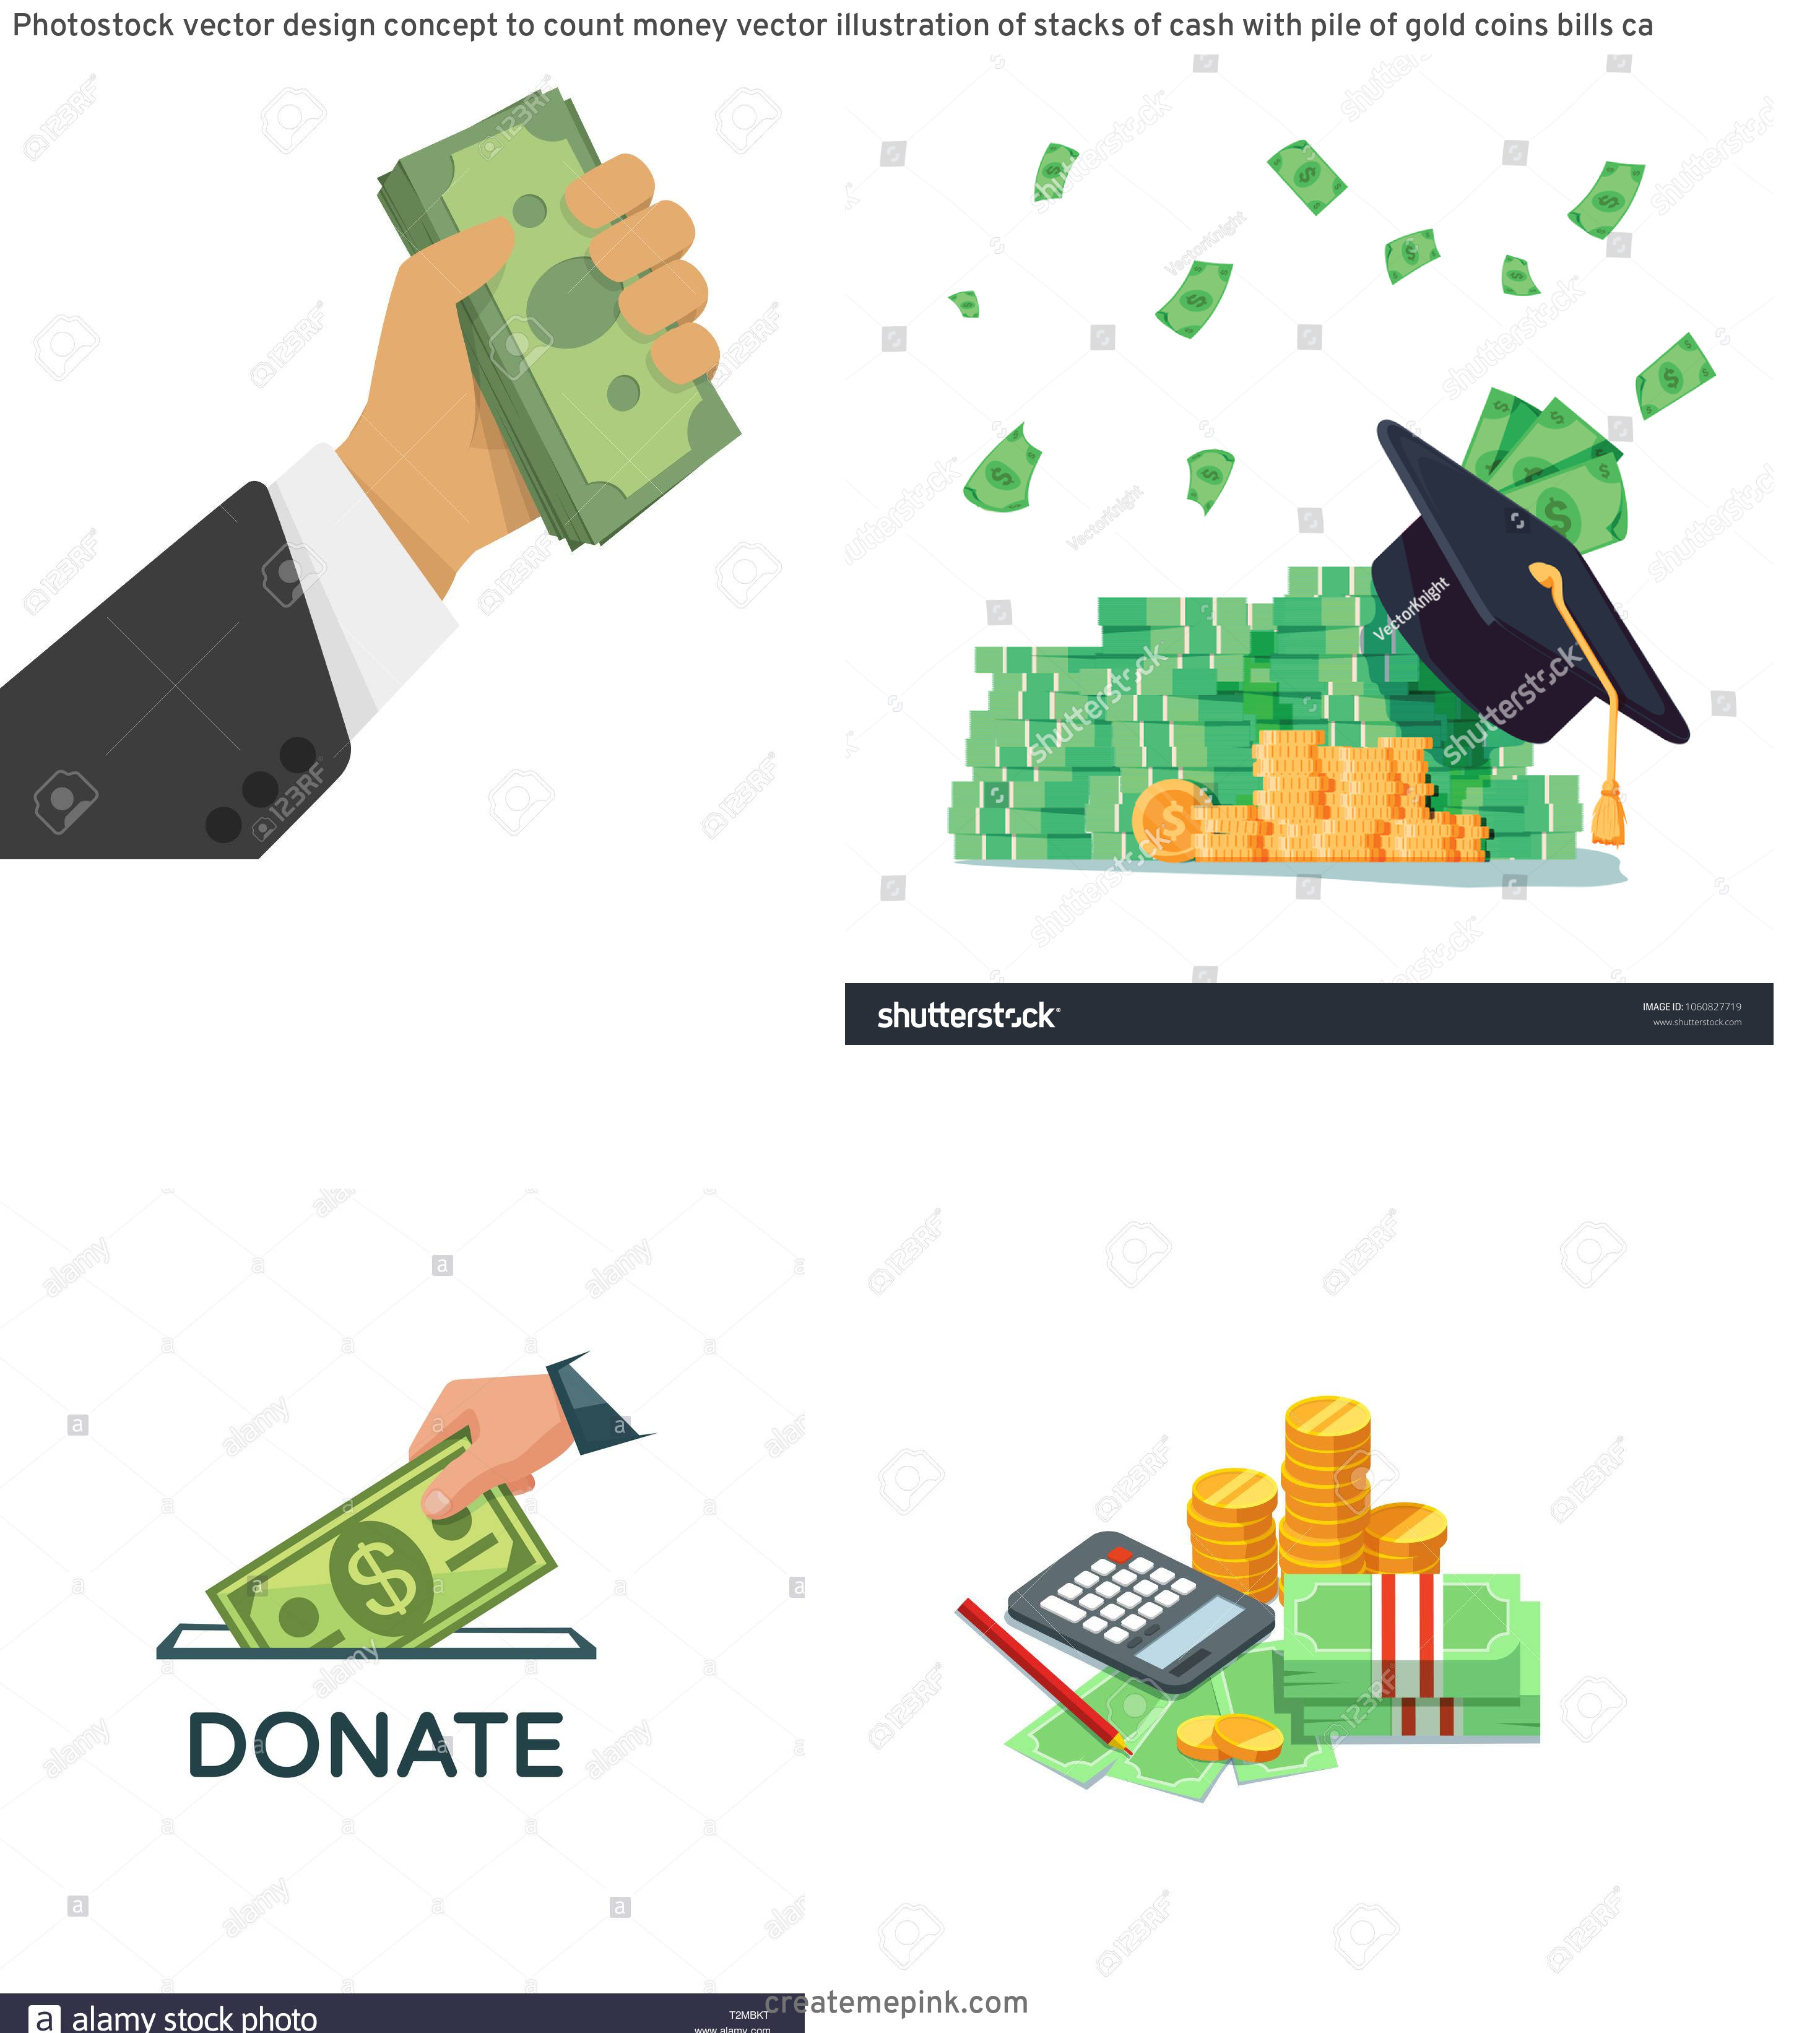 Money Vector Illustration: Photostock Vector Design Concept To Count Money Vector Illustration Of Stacks Of Cash With Pile Of Gold Coins Bills Ca